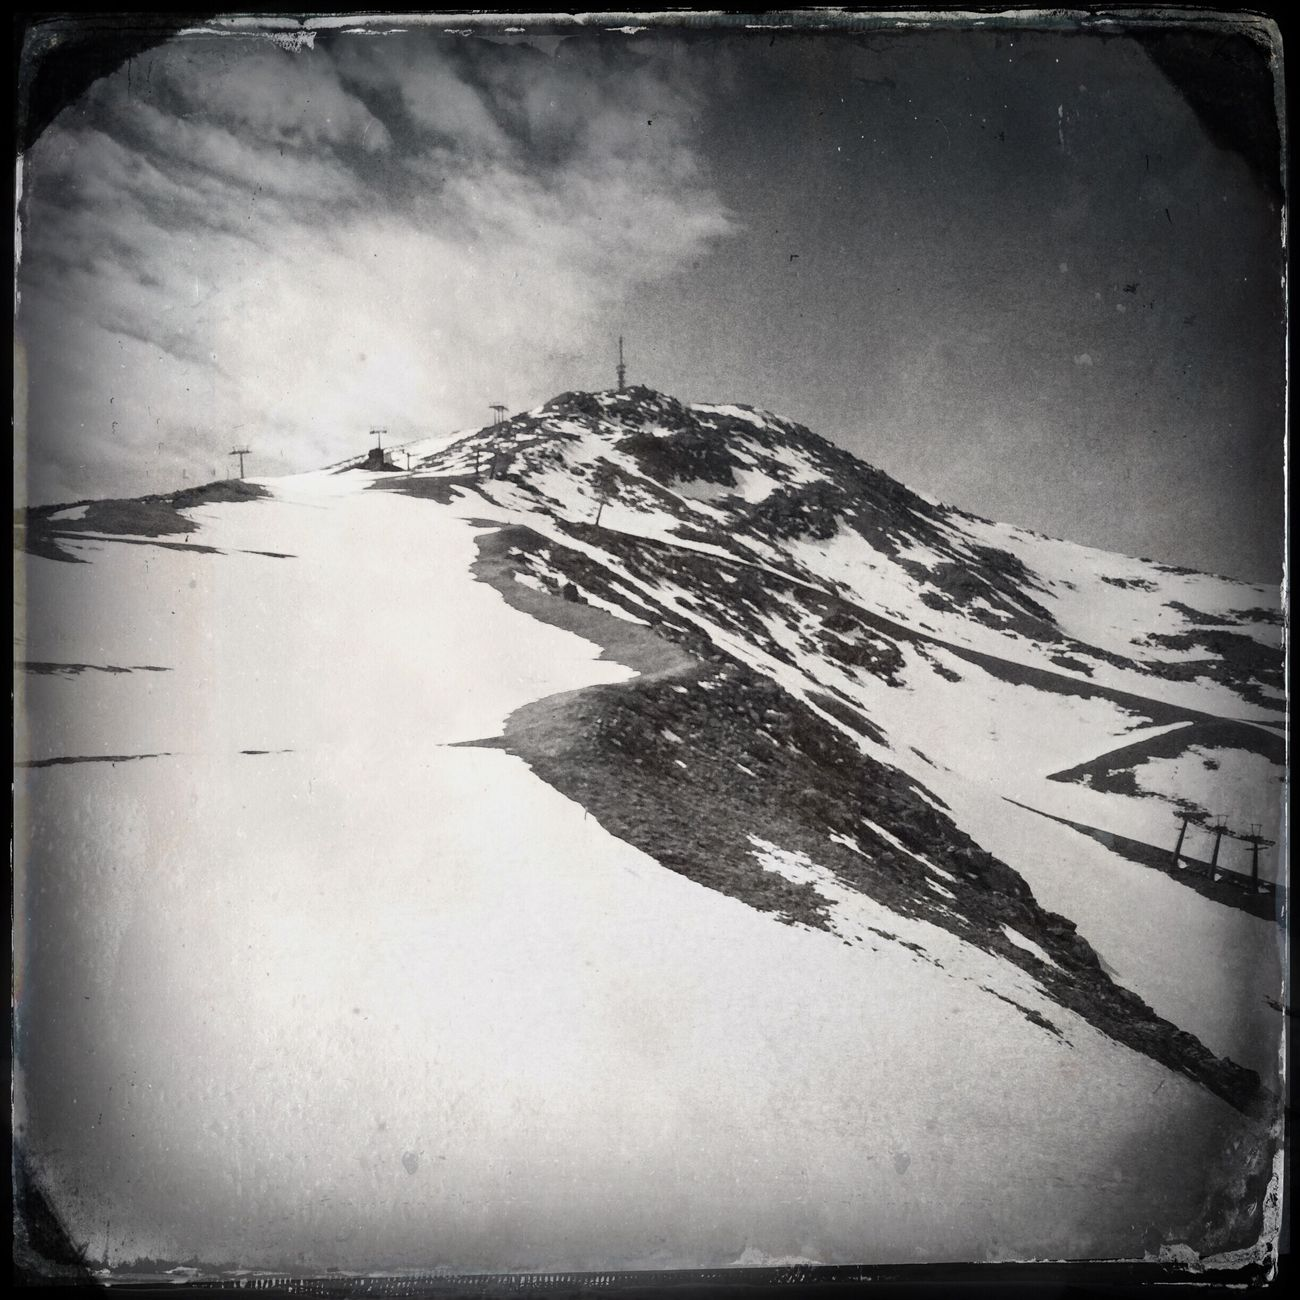 Getting to the top of the mountain Blackandwhite Hipstamatic The_guido